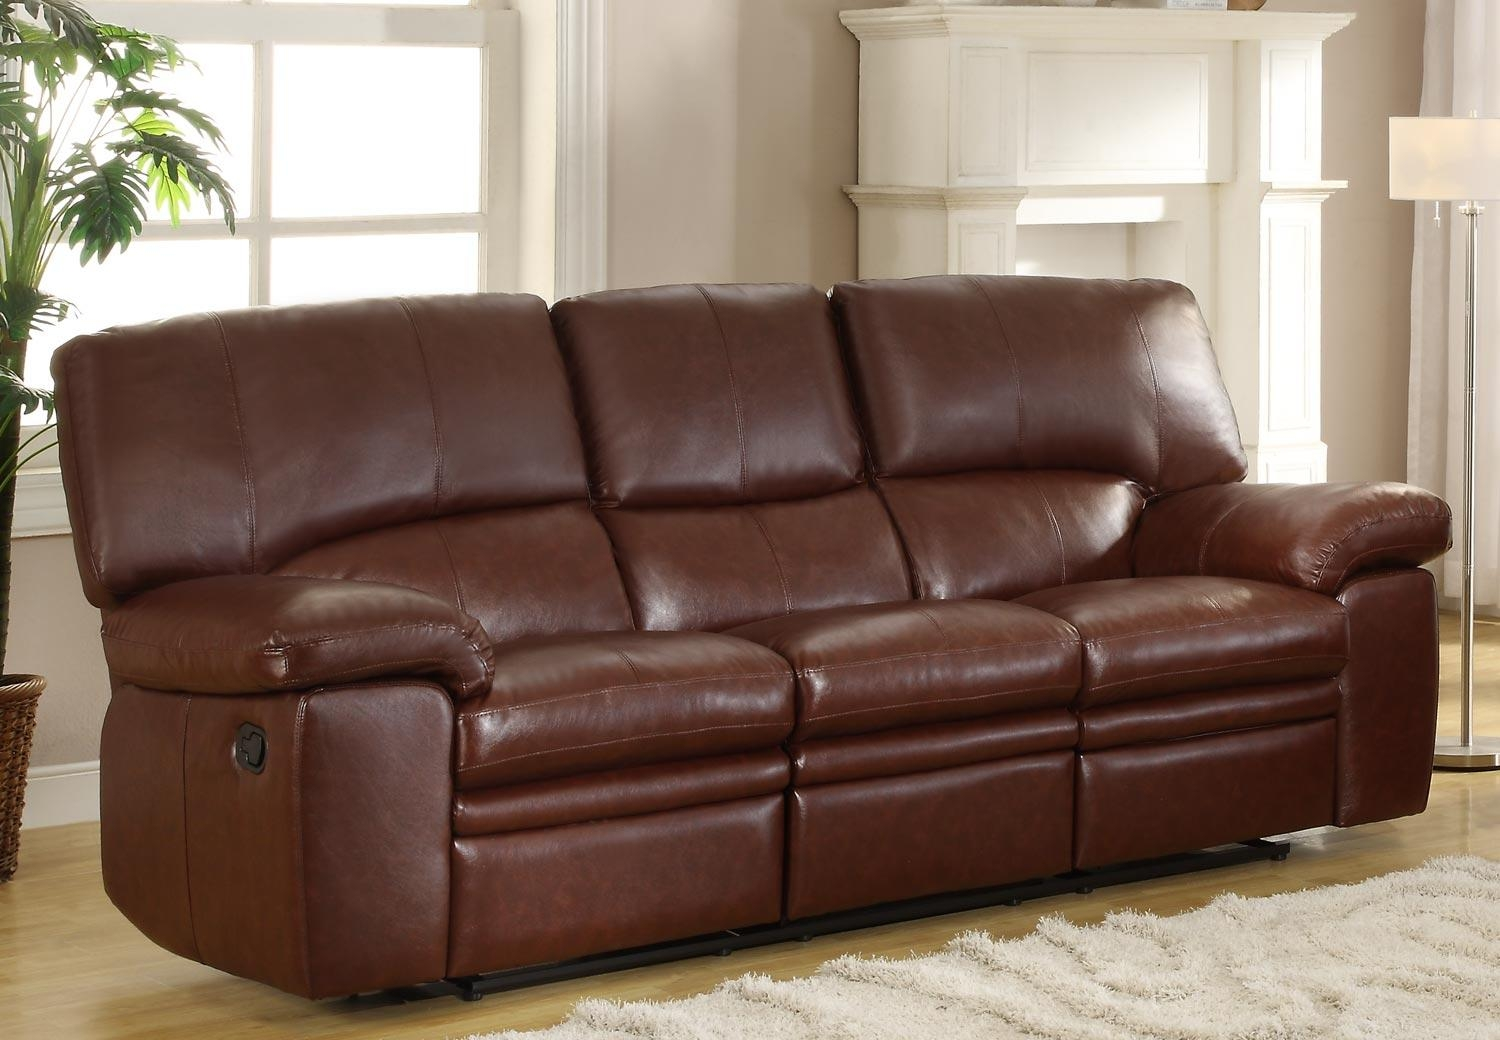 20 ideas of berkline leather sofas sofa ideas for Blue leather reclining sofa